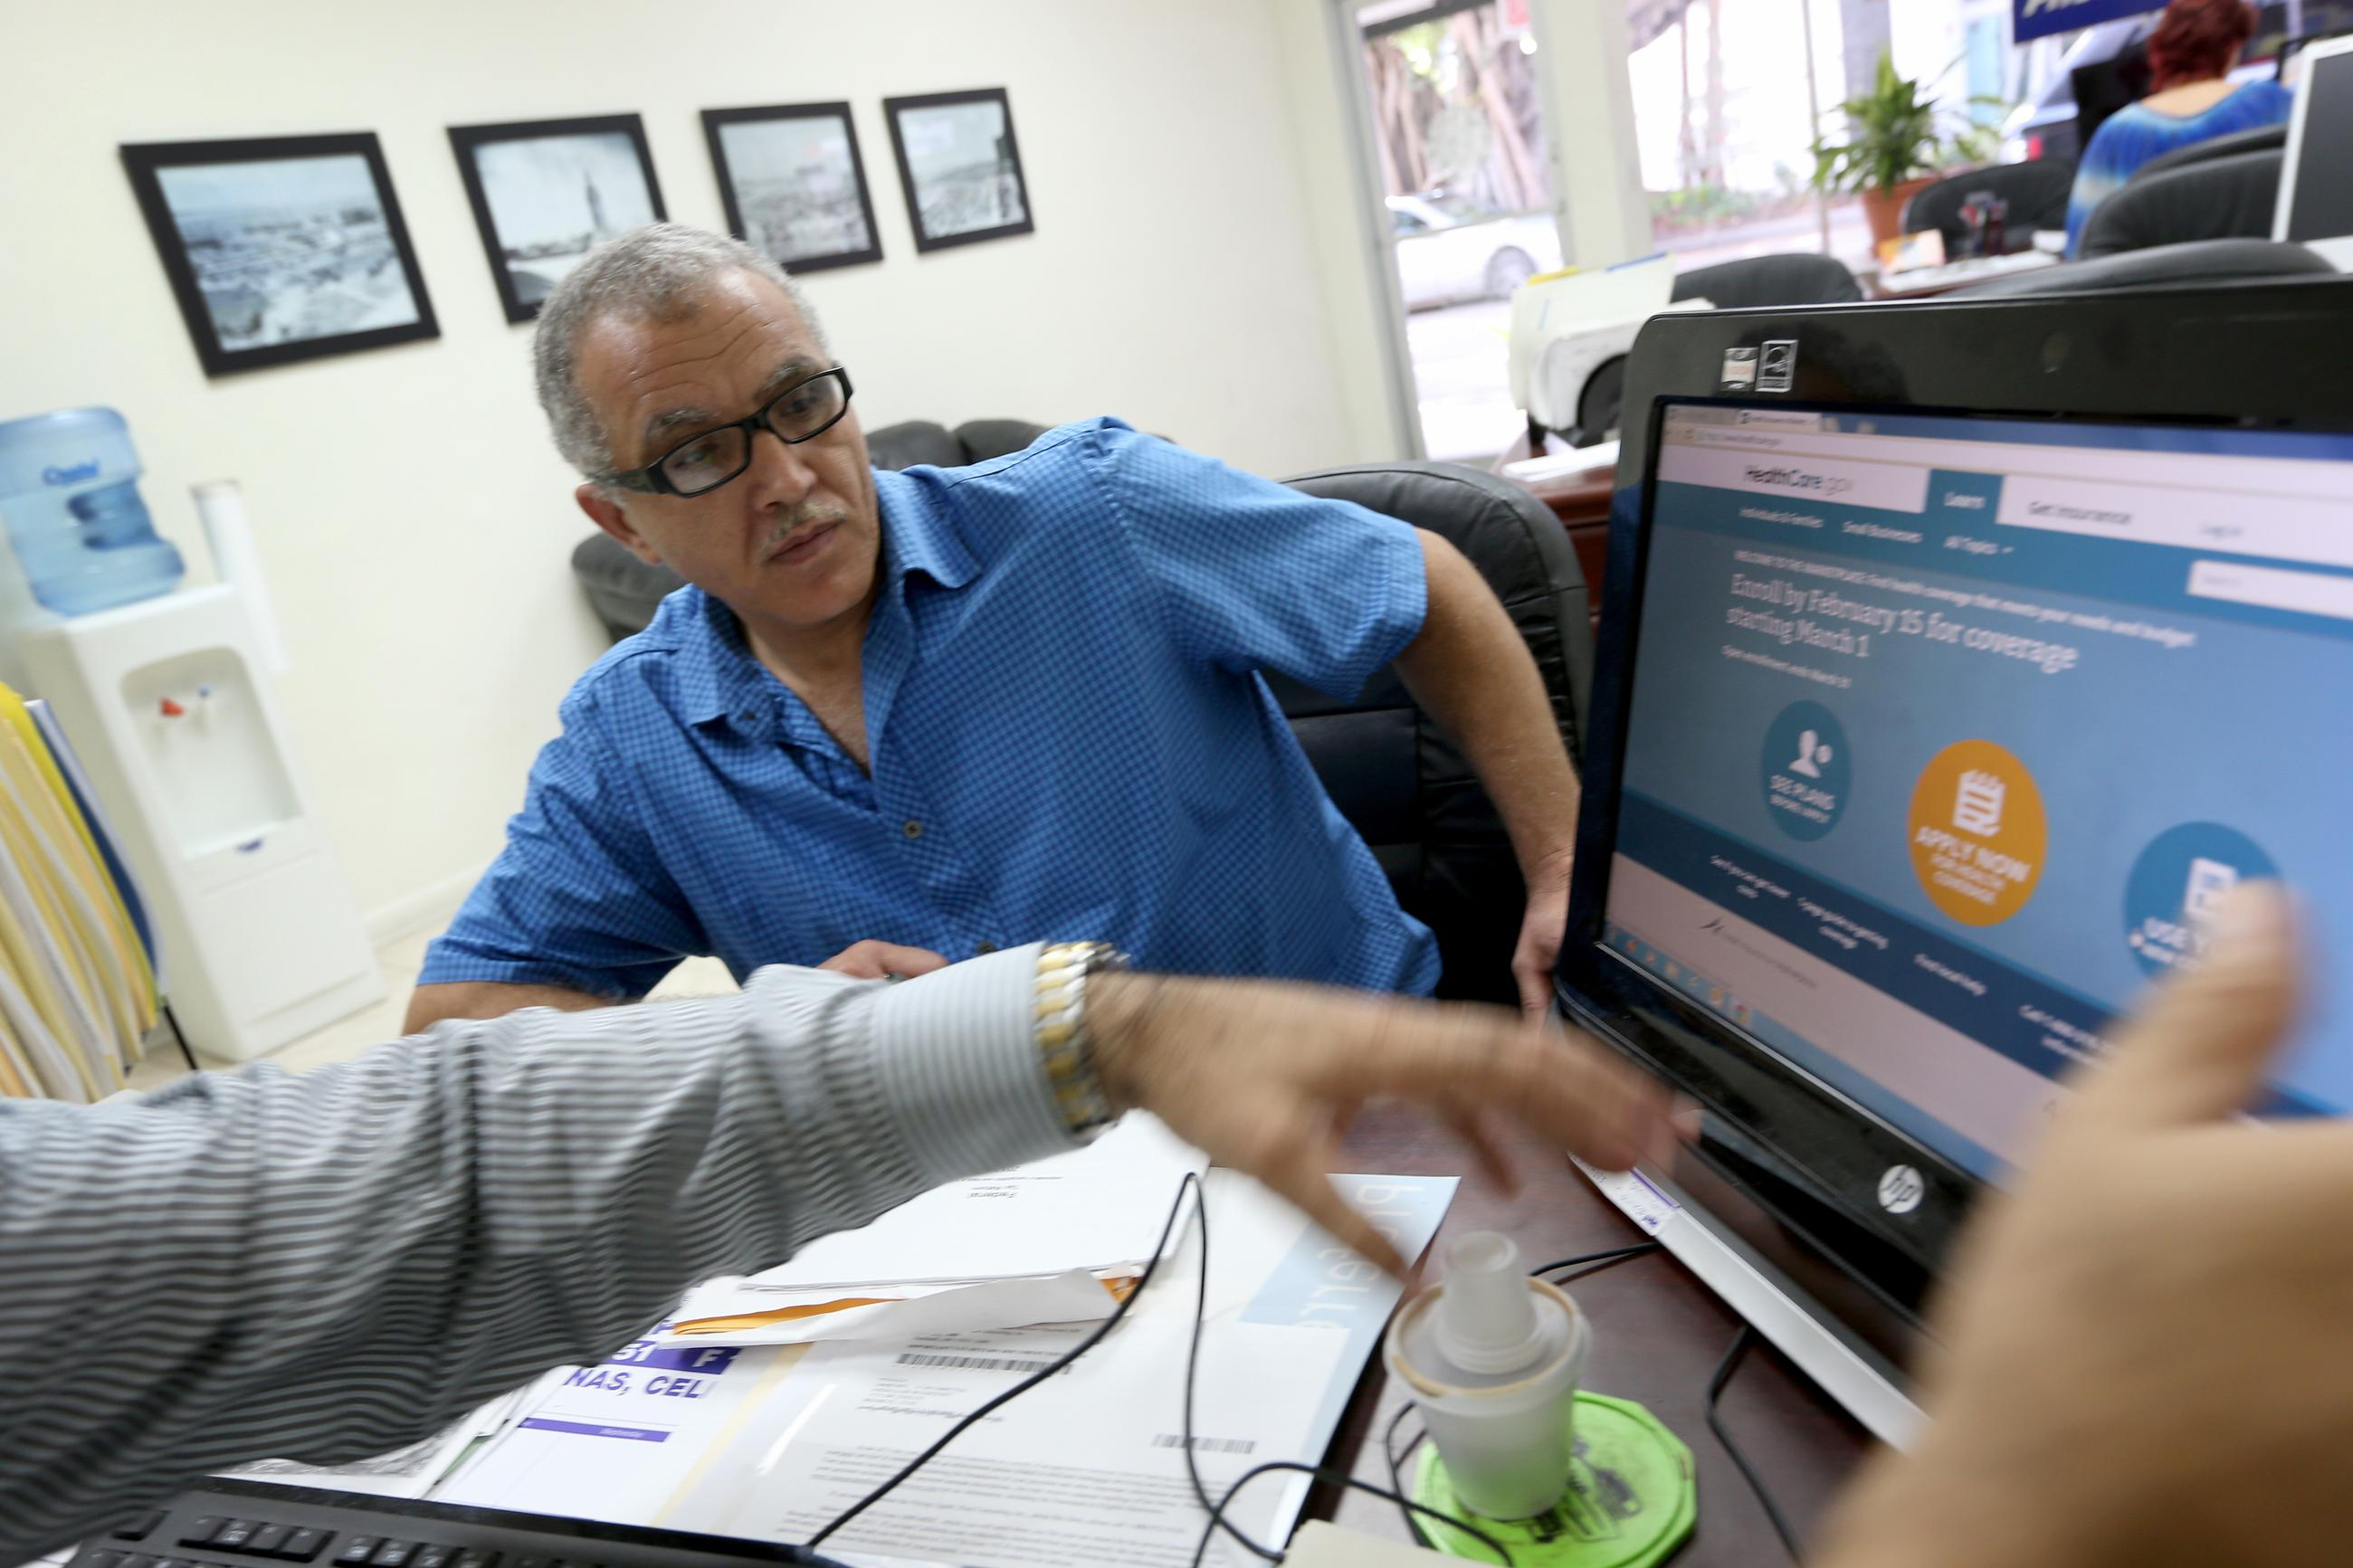 How Company Health Care Plans Are Evolving in the Age of Obamacare